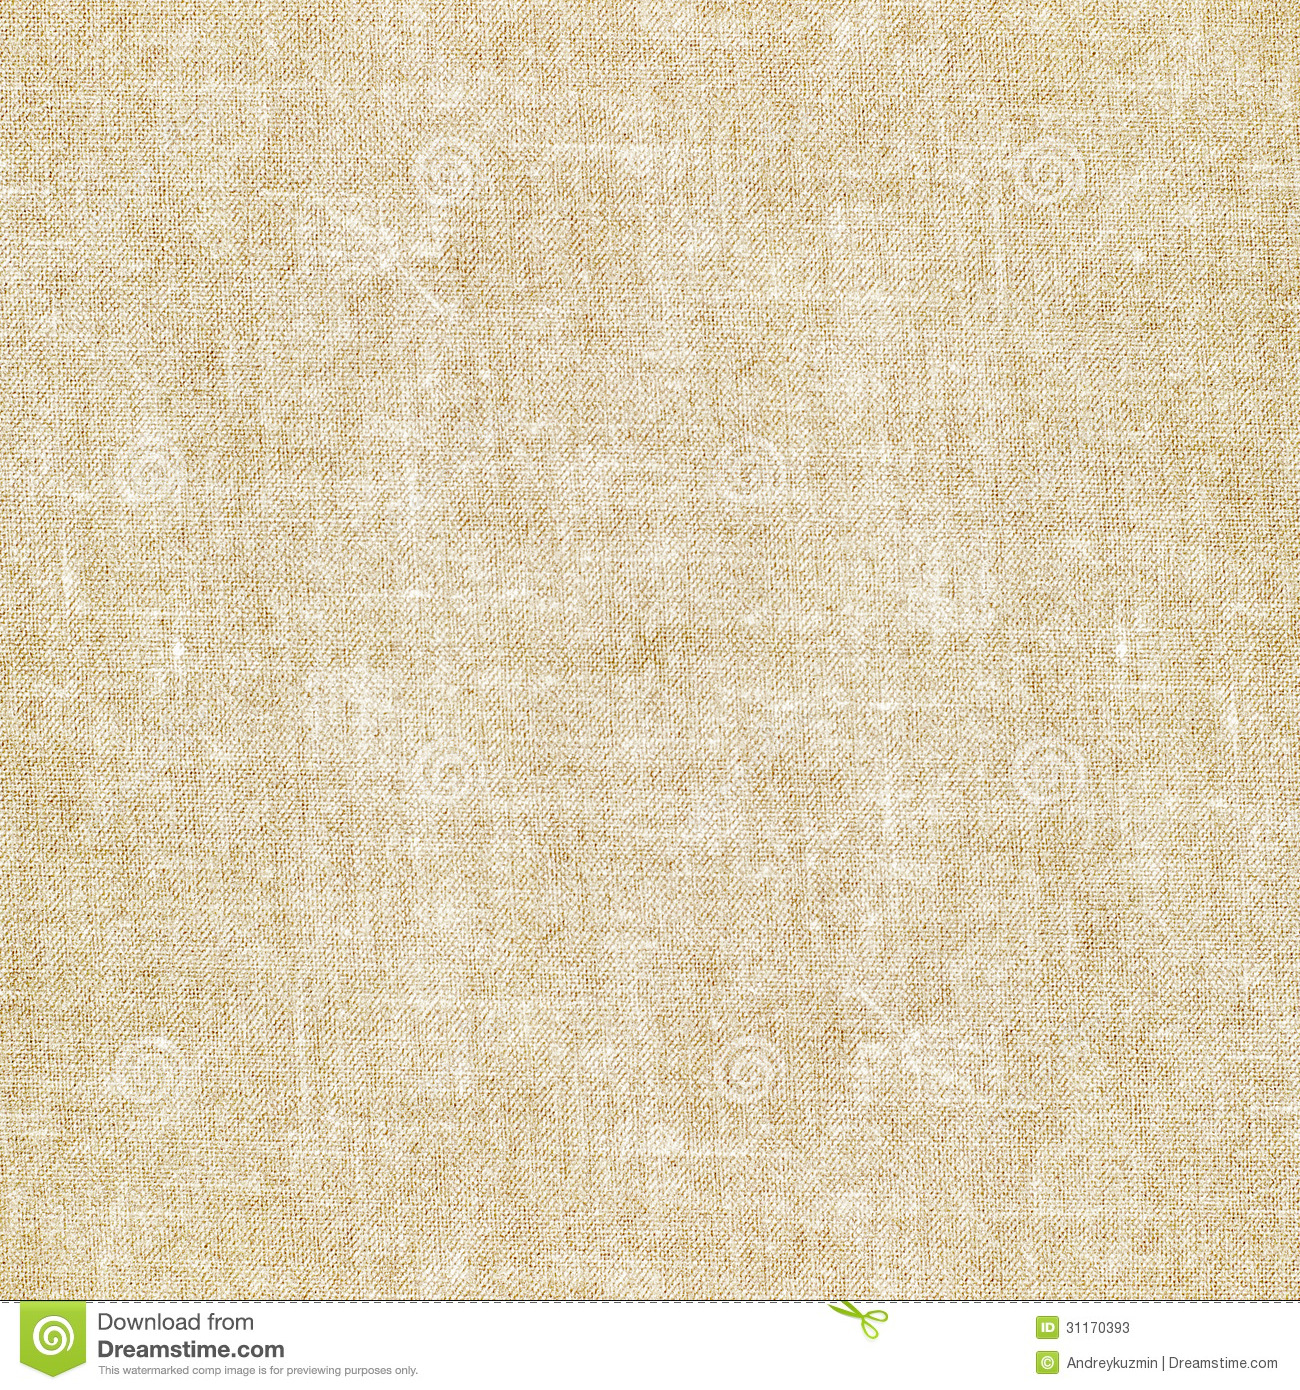 Old fabric cloth texture background stock image image for Cloth material